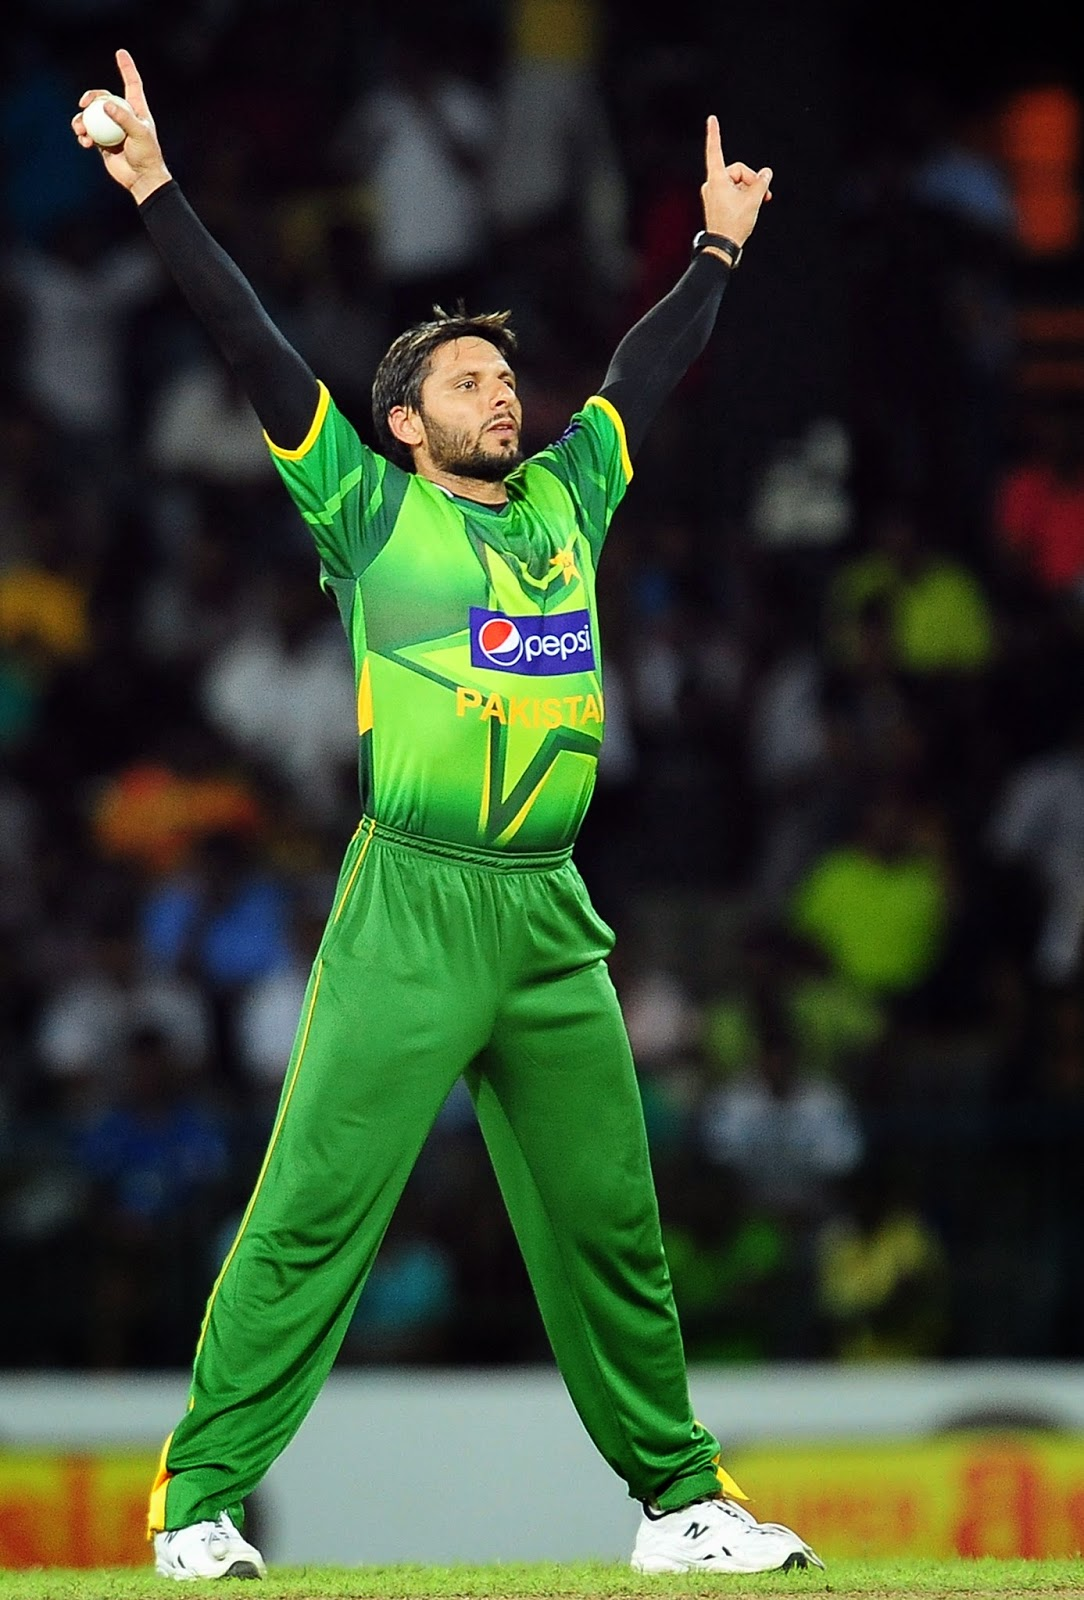 Shahid Afridi stock pictures and images